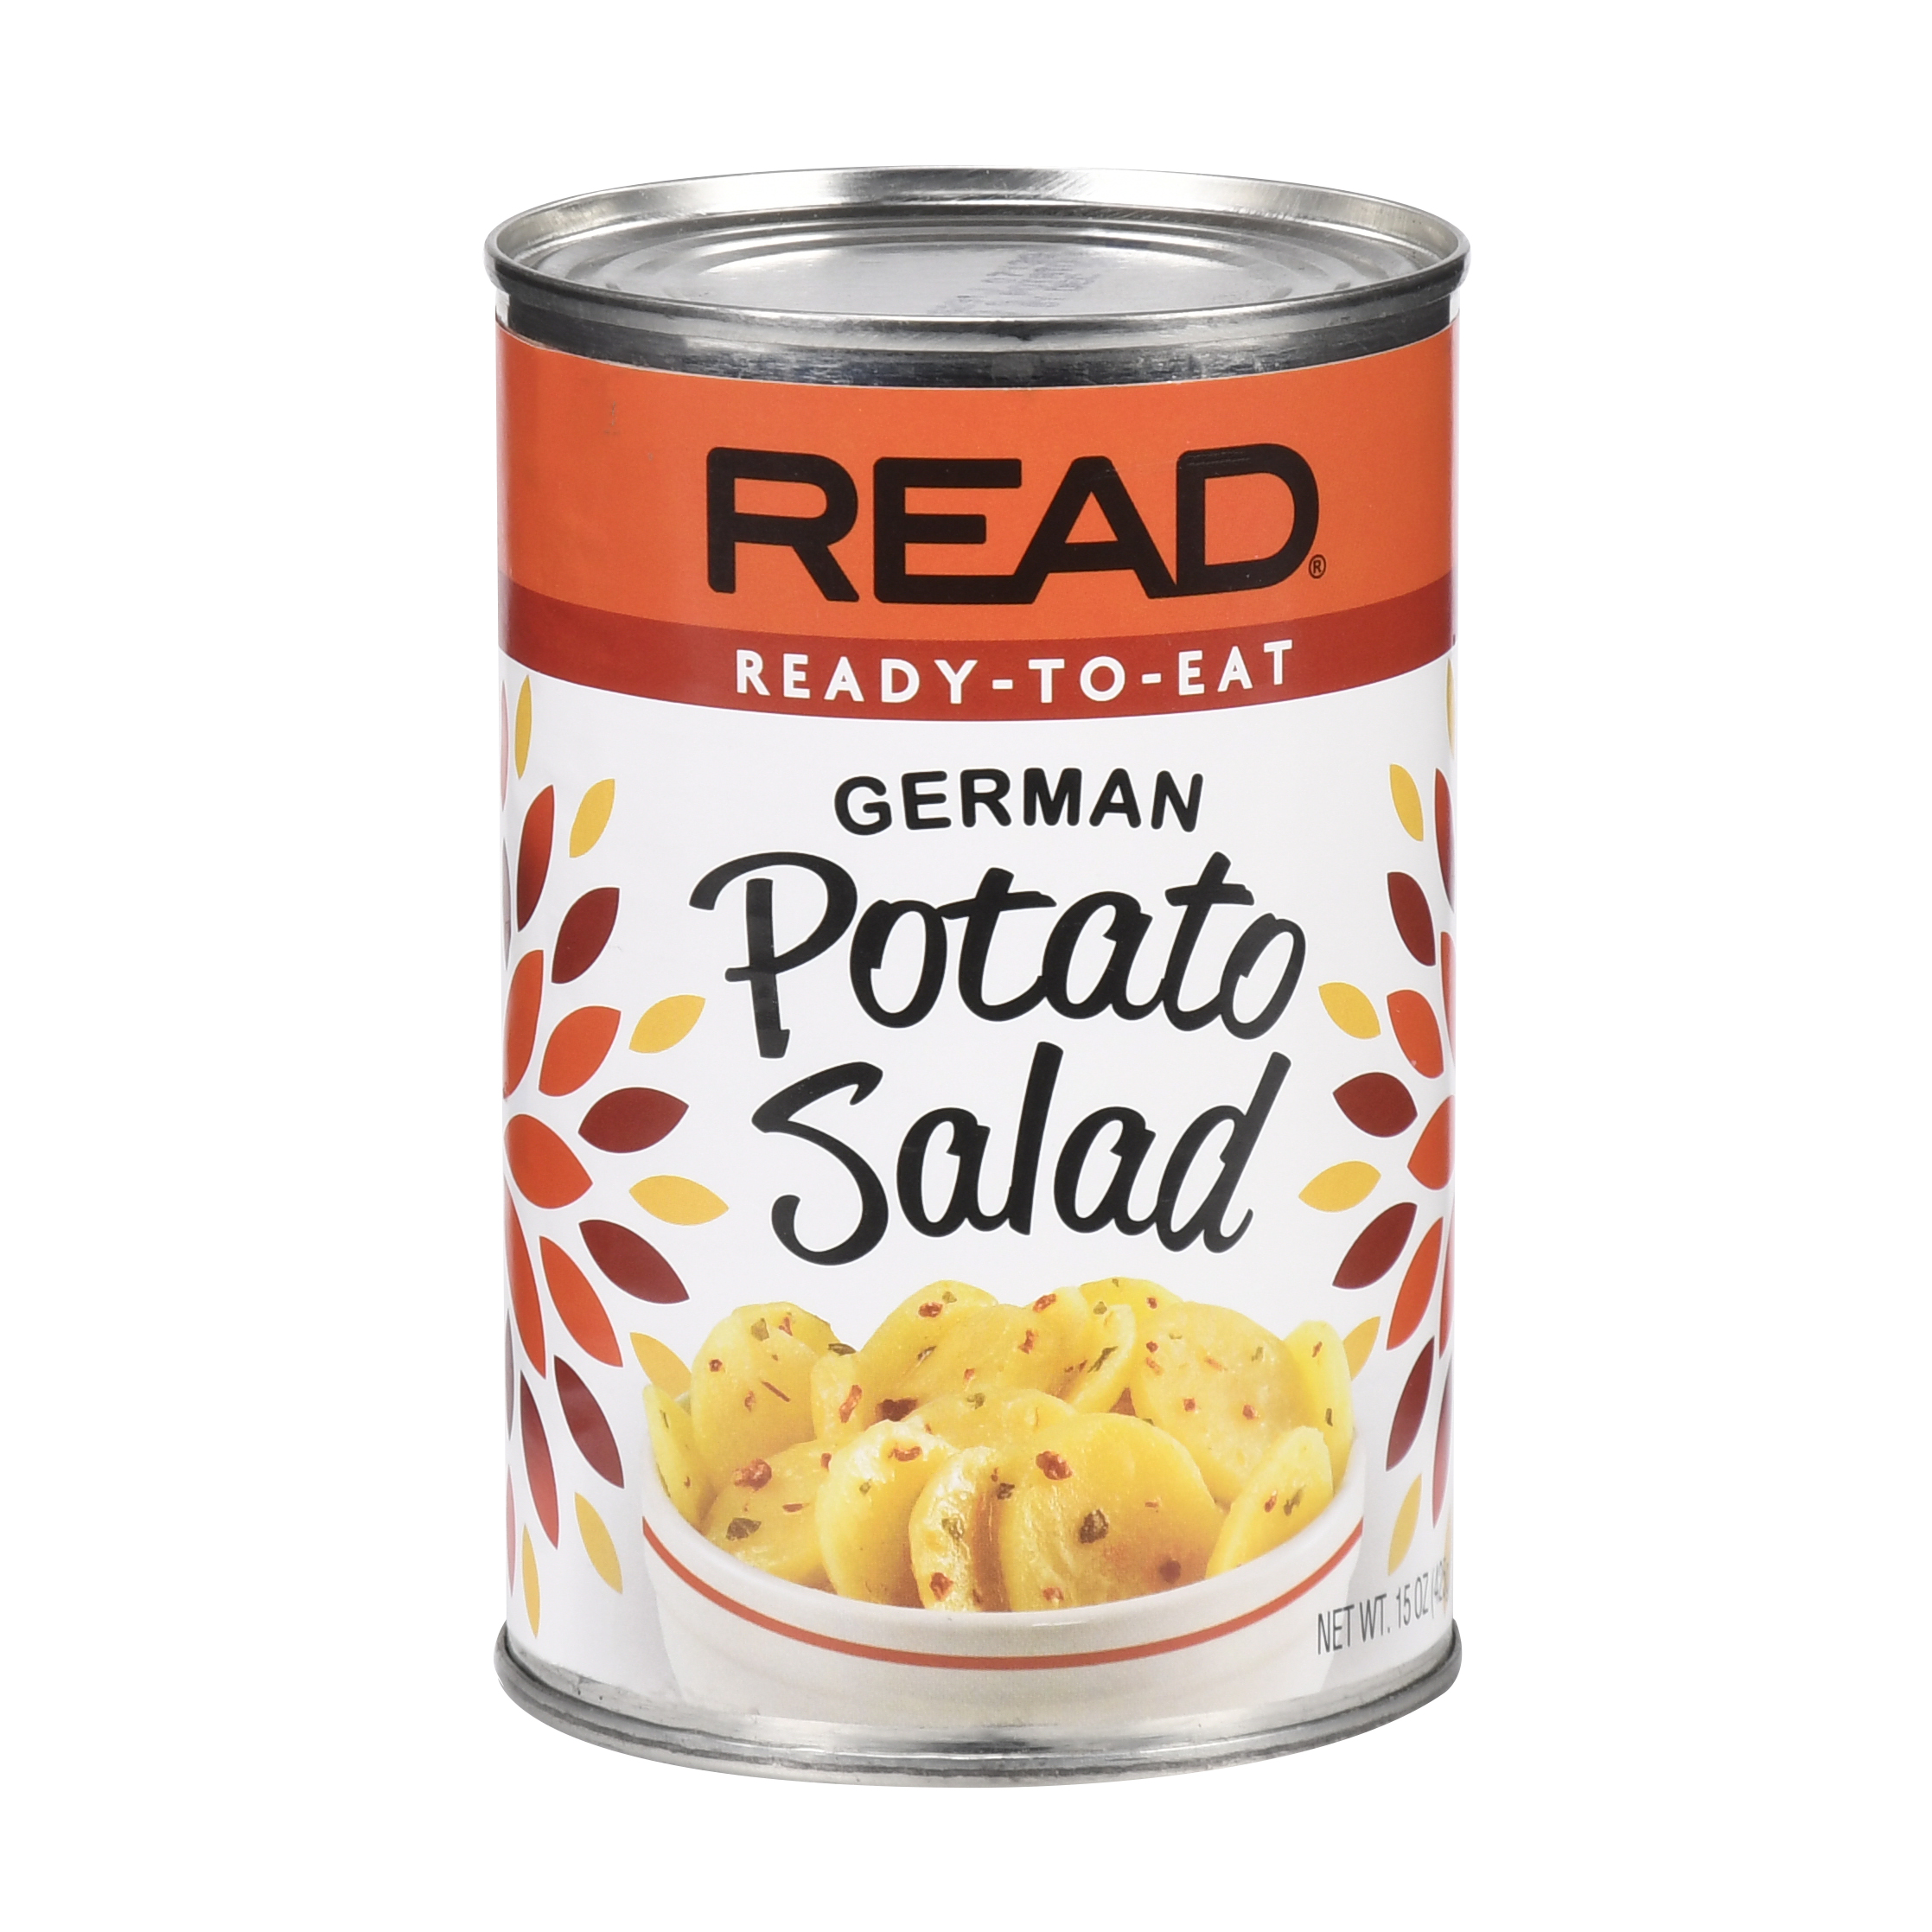 Read German Potato Salad, 15 oz